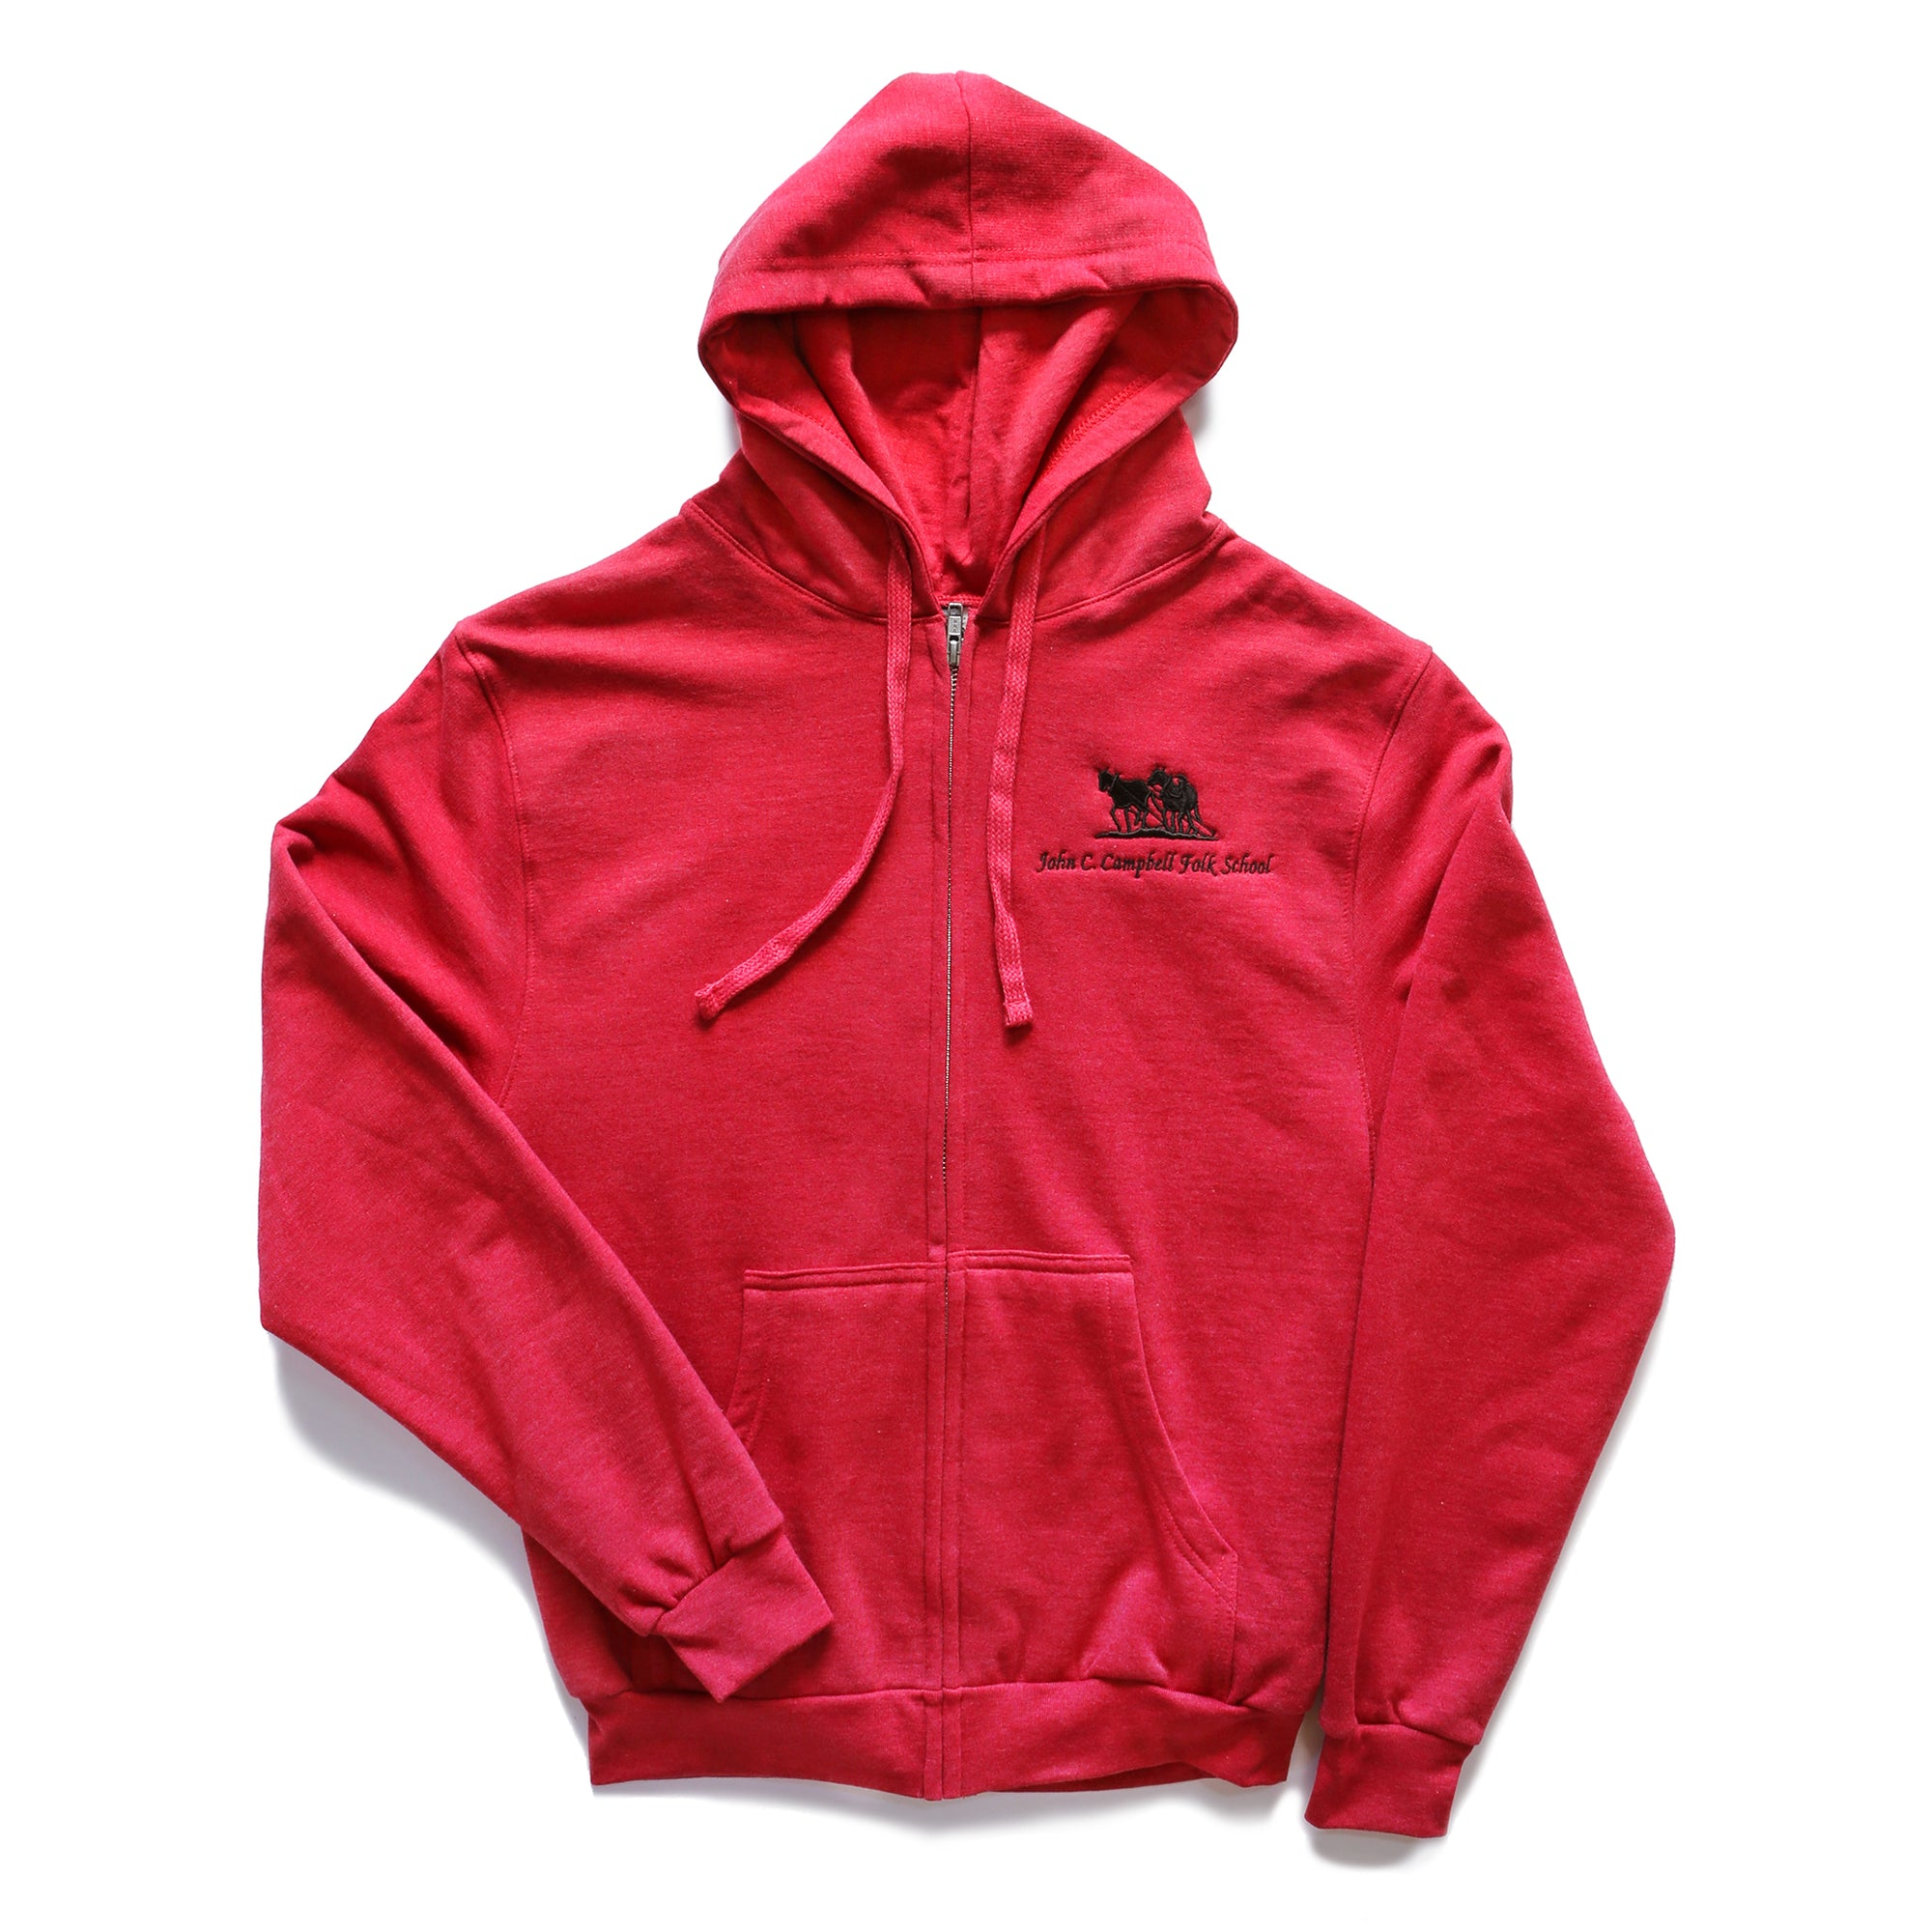 2x Heather Red Hoodie